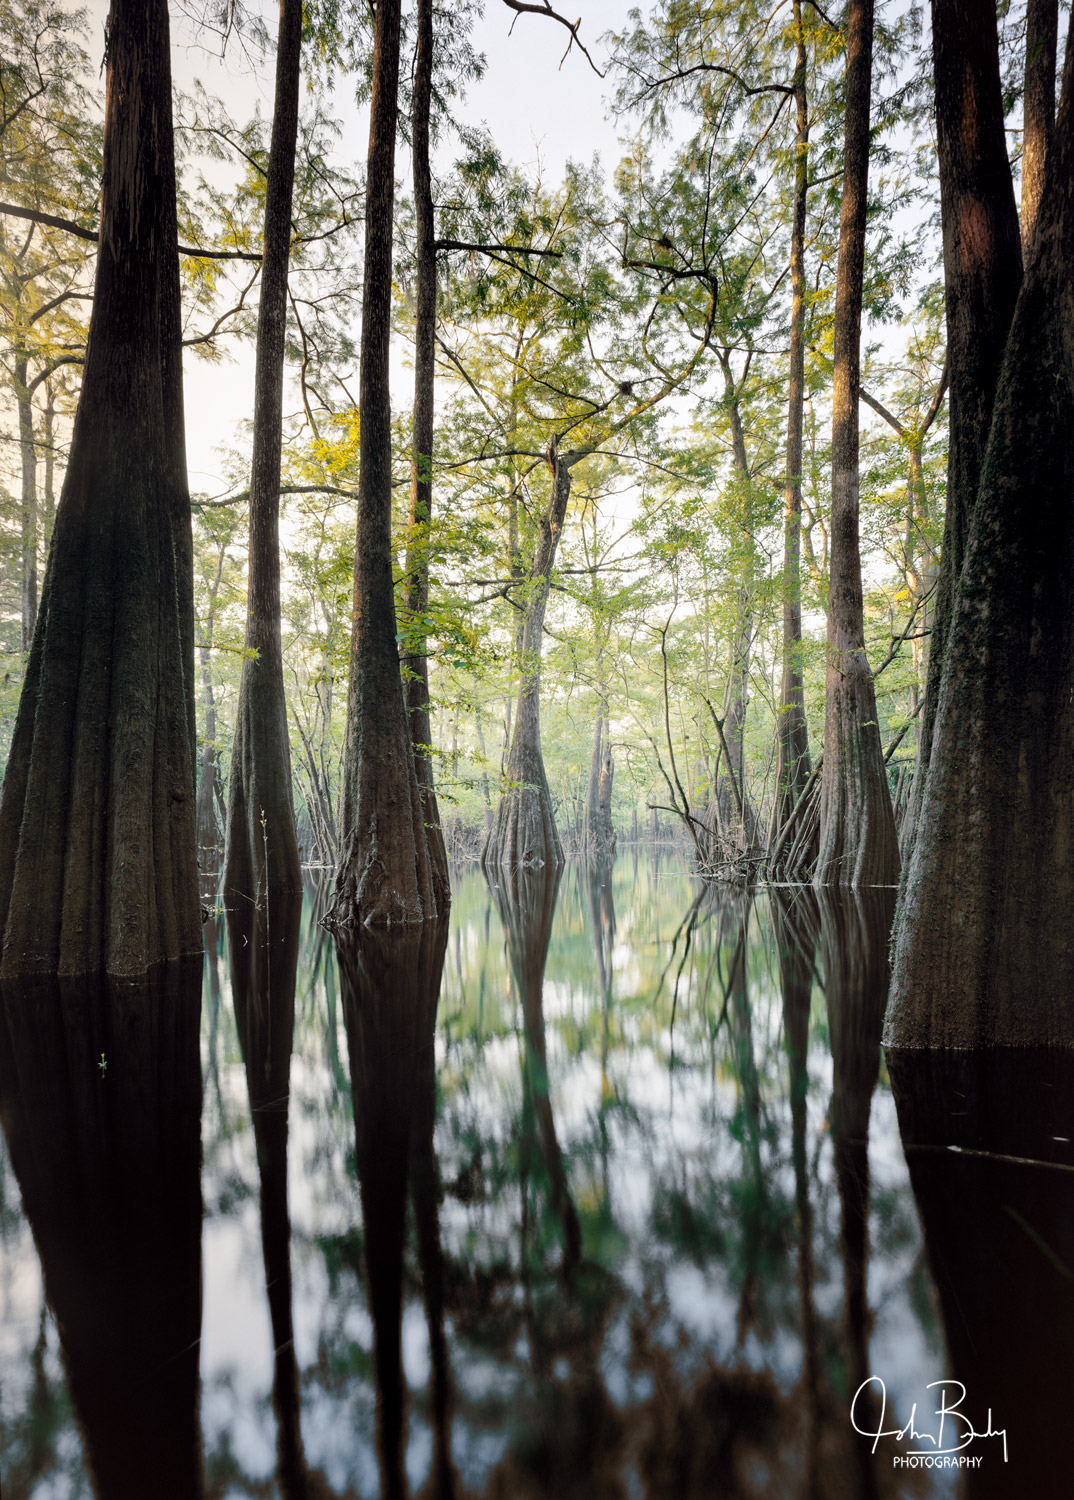 Florida, high springs district, ancient cypress, Suwannee, Santa Fe, large format film photography, wooden view camera, photo